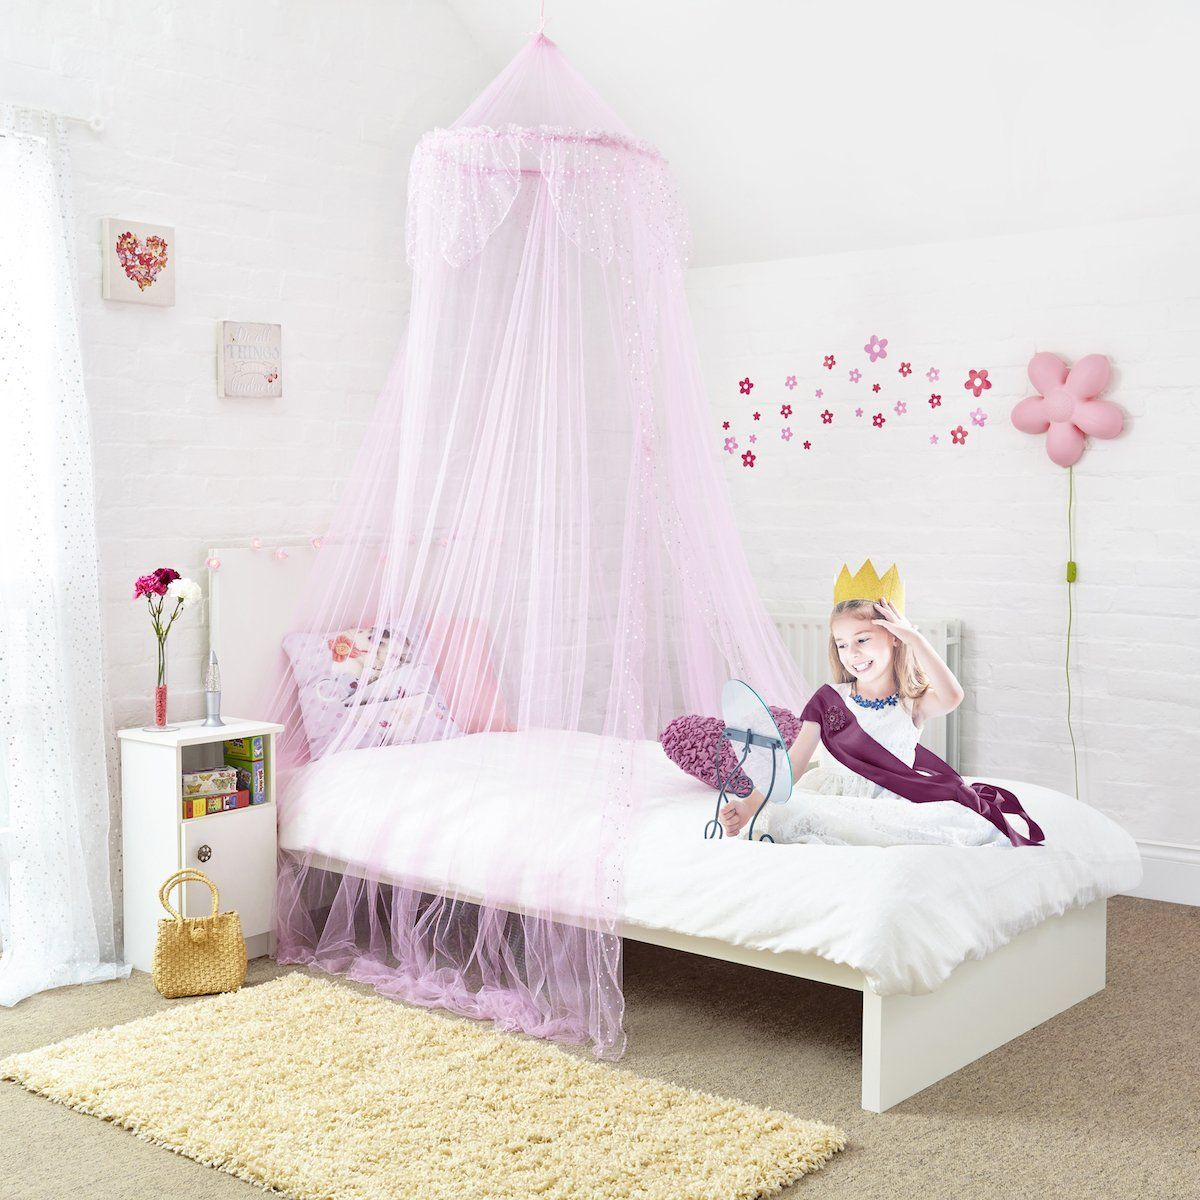 Princess Bedroom Accessories 20 Princess Bed Canopy Beautiful Silver Sequined Childrens Bed